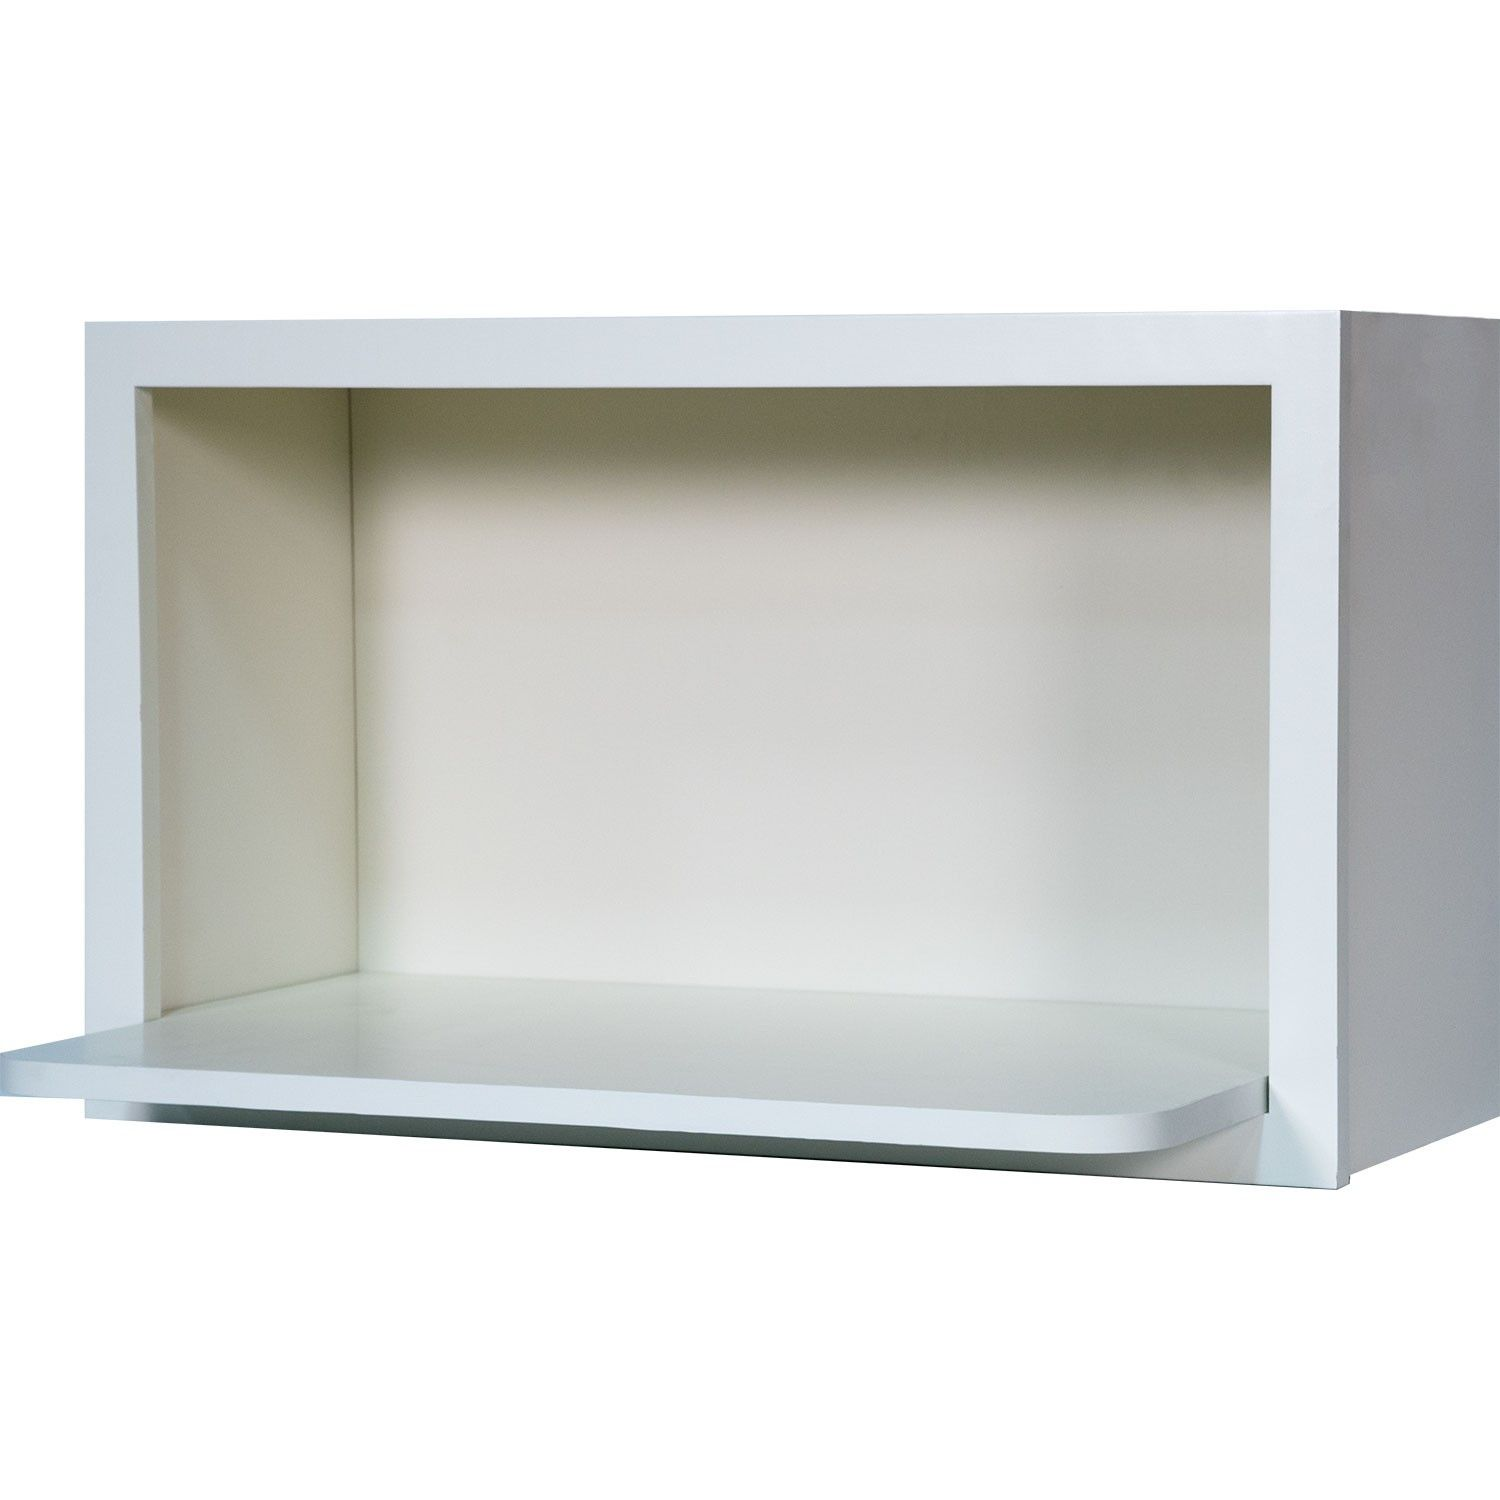 30 inch microwave shelf wall cabinet in shaker white 30 for Kitchen cabinet shelves